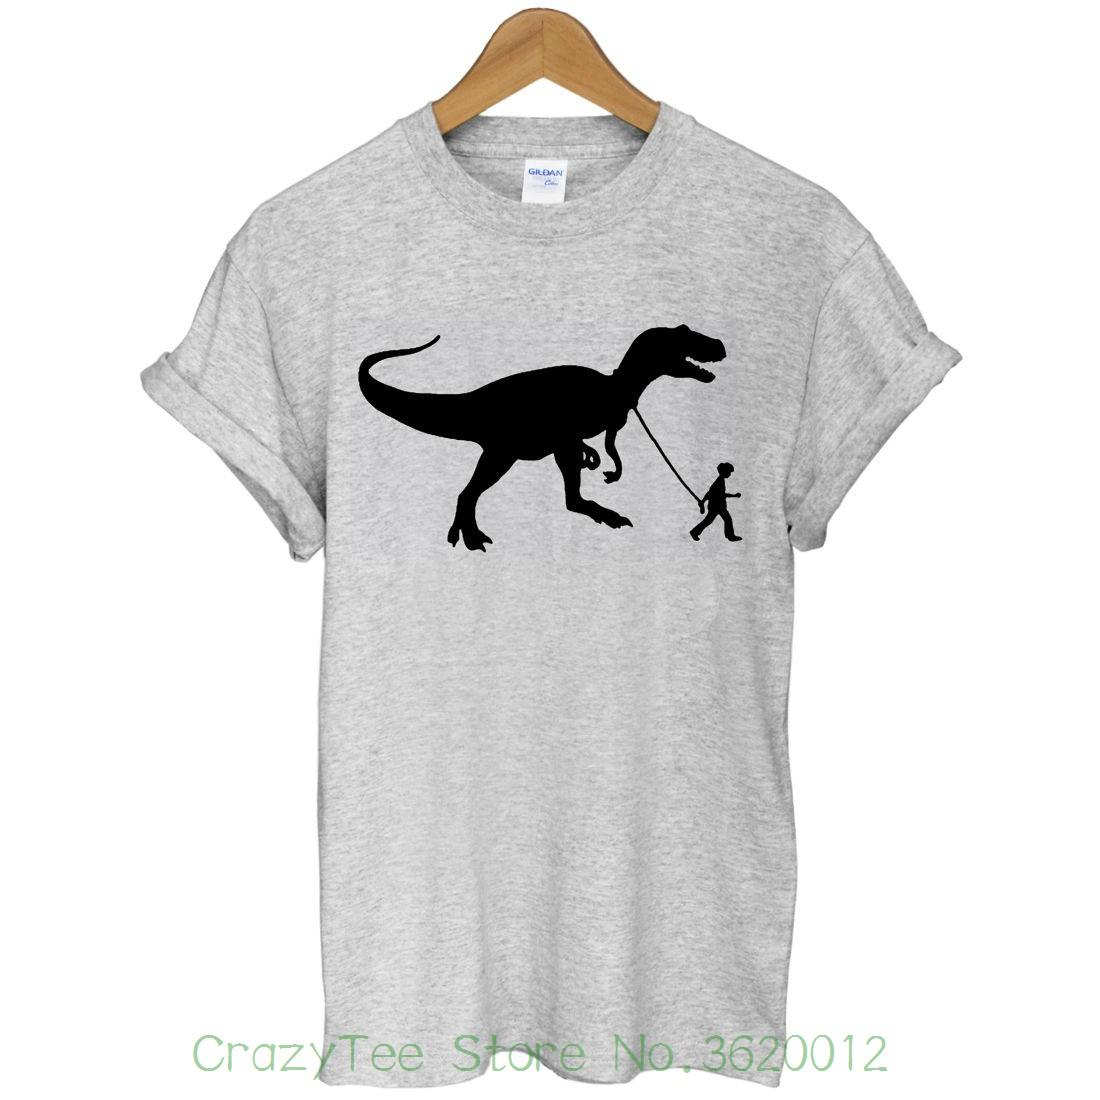 5db37822 Women's Tee Best Friend#2 T - Rex Dinosaur Park World Film Movie Funny  Party Gift Men T-shirt New Women